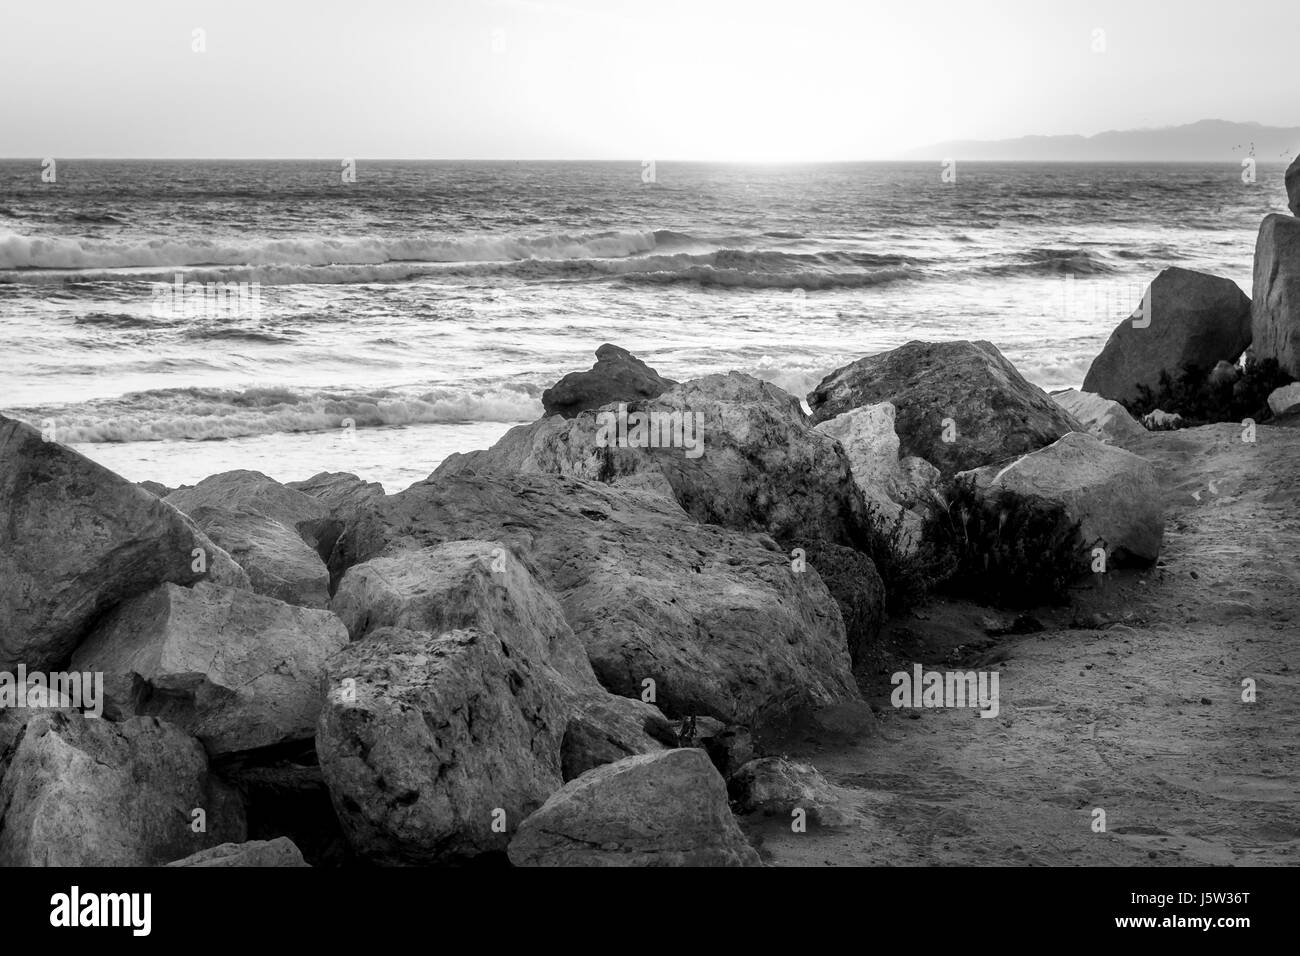 Black and white photo of a rocky seashore at sunset. - Stock Image